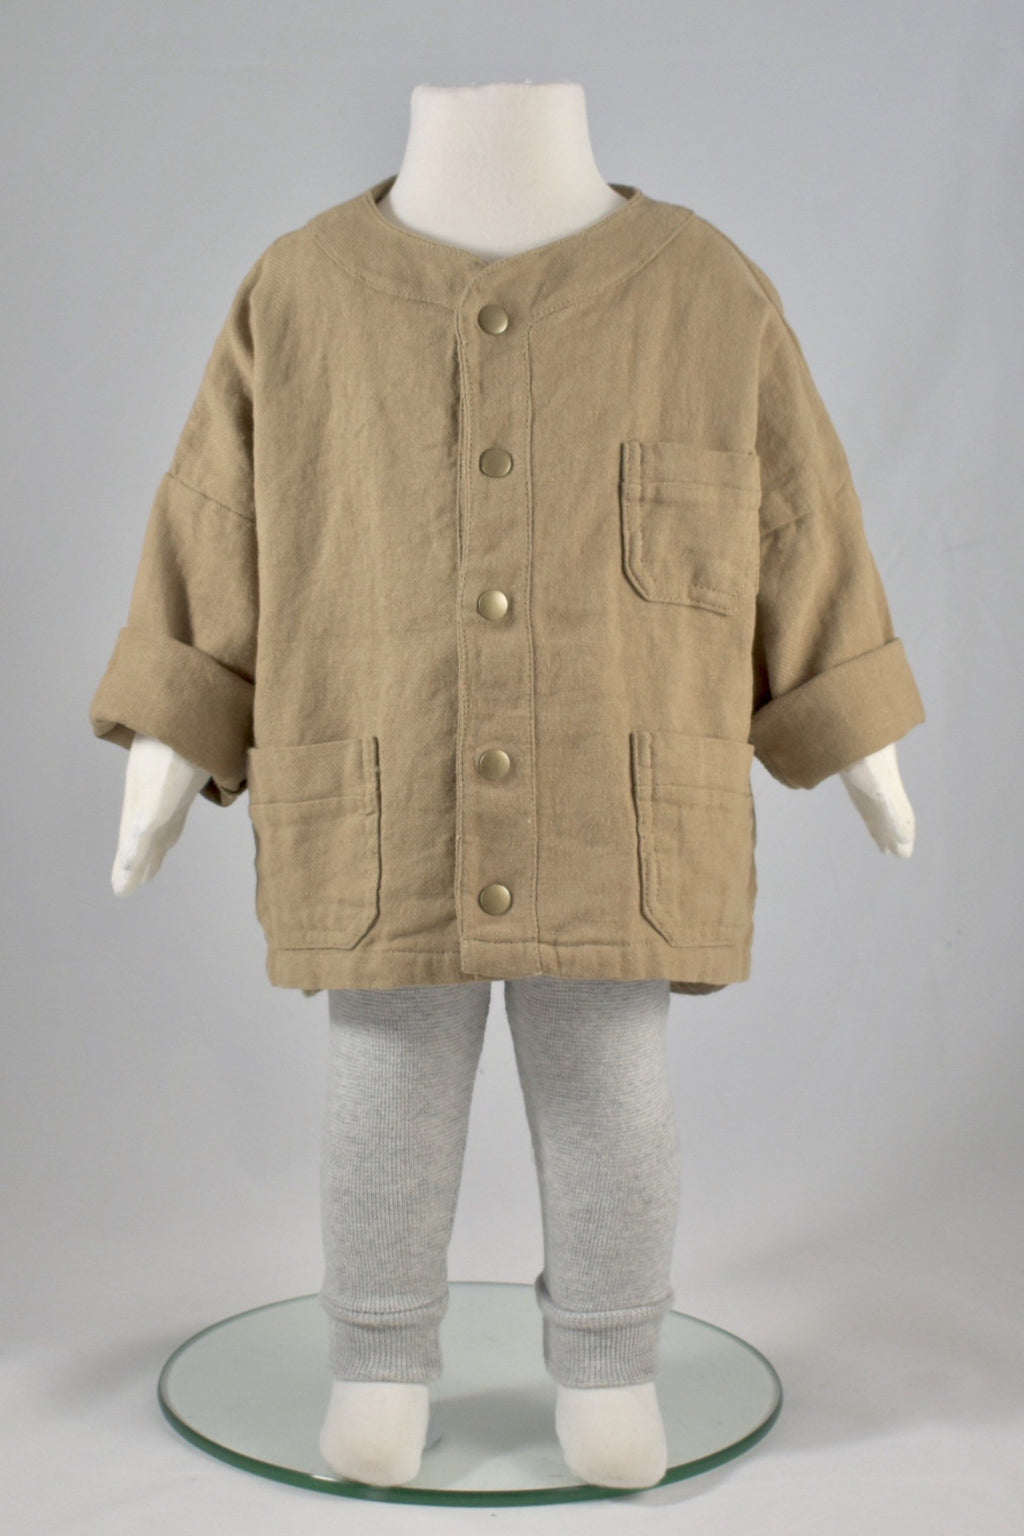 Japanese Cotton Jacket